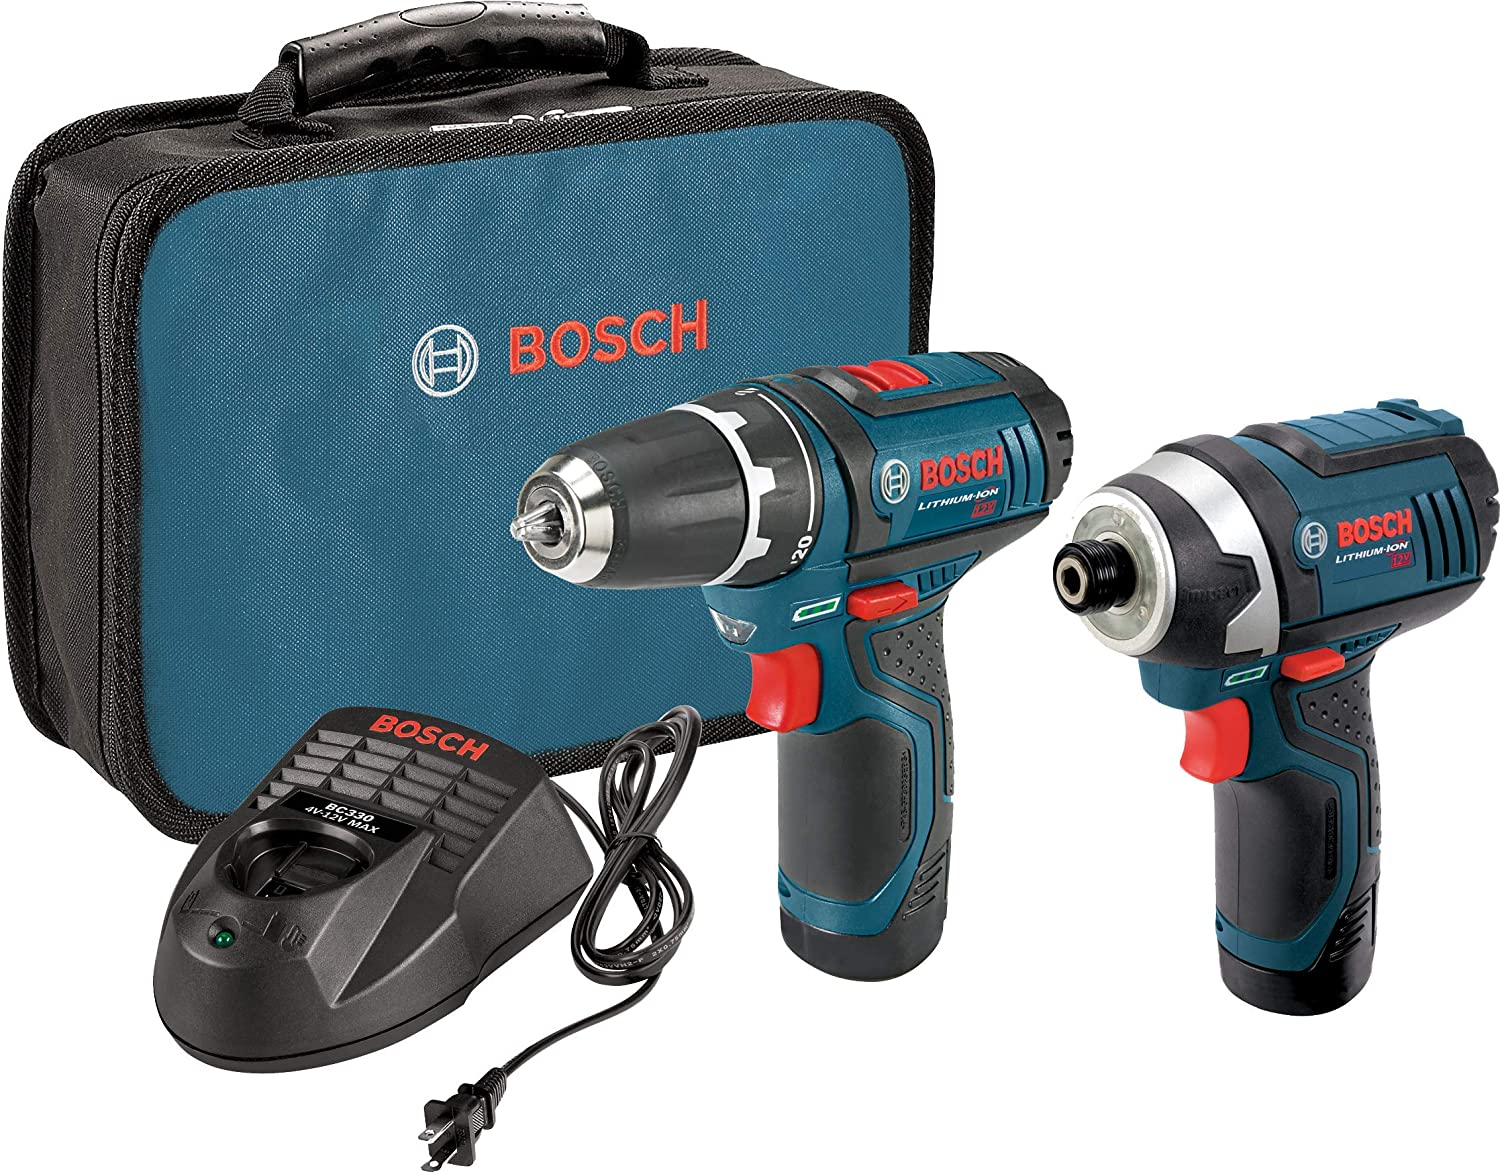 Bosch Power Tools Combo Kit Clpk22 120   12 Volt Cordless Tool Set (Drill/Driver And Impact Driver) With 2 Batteries, Charger And Case by Bosch